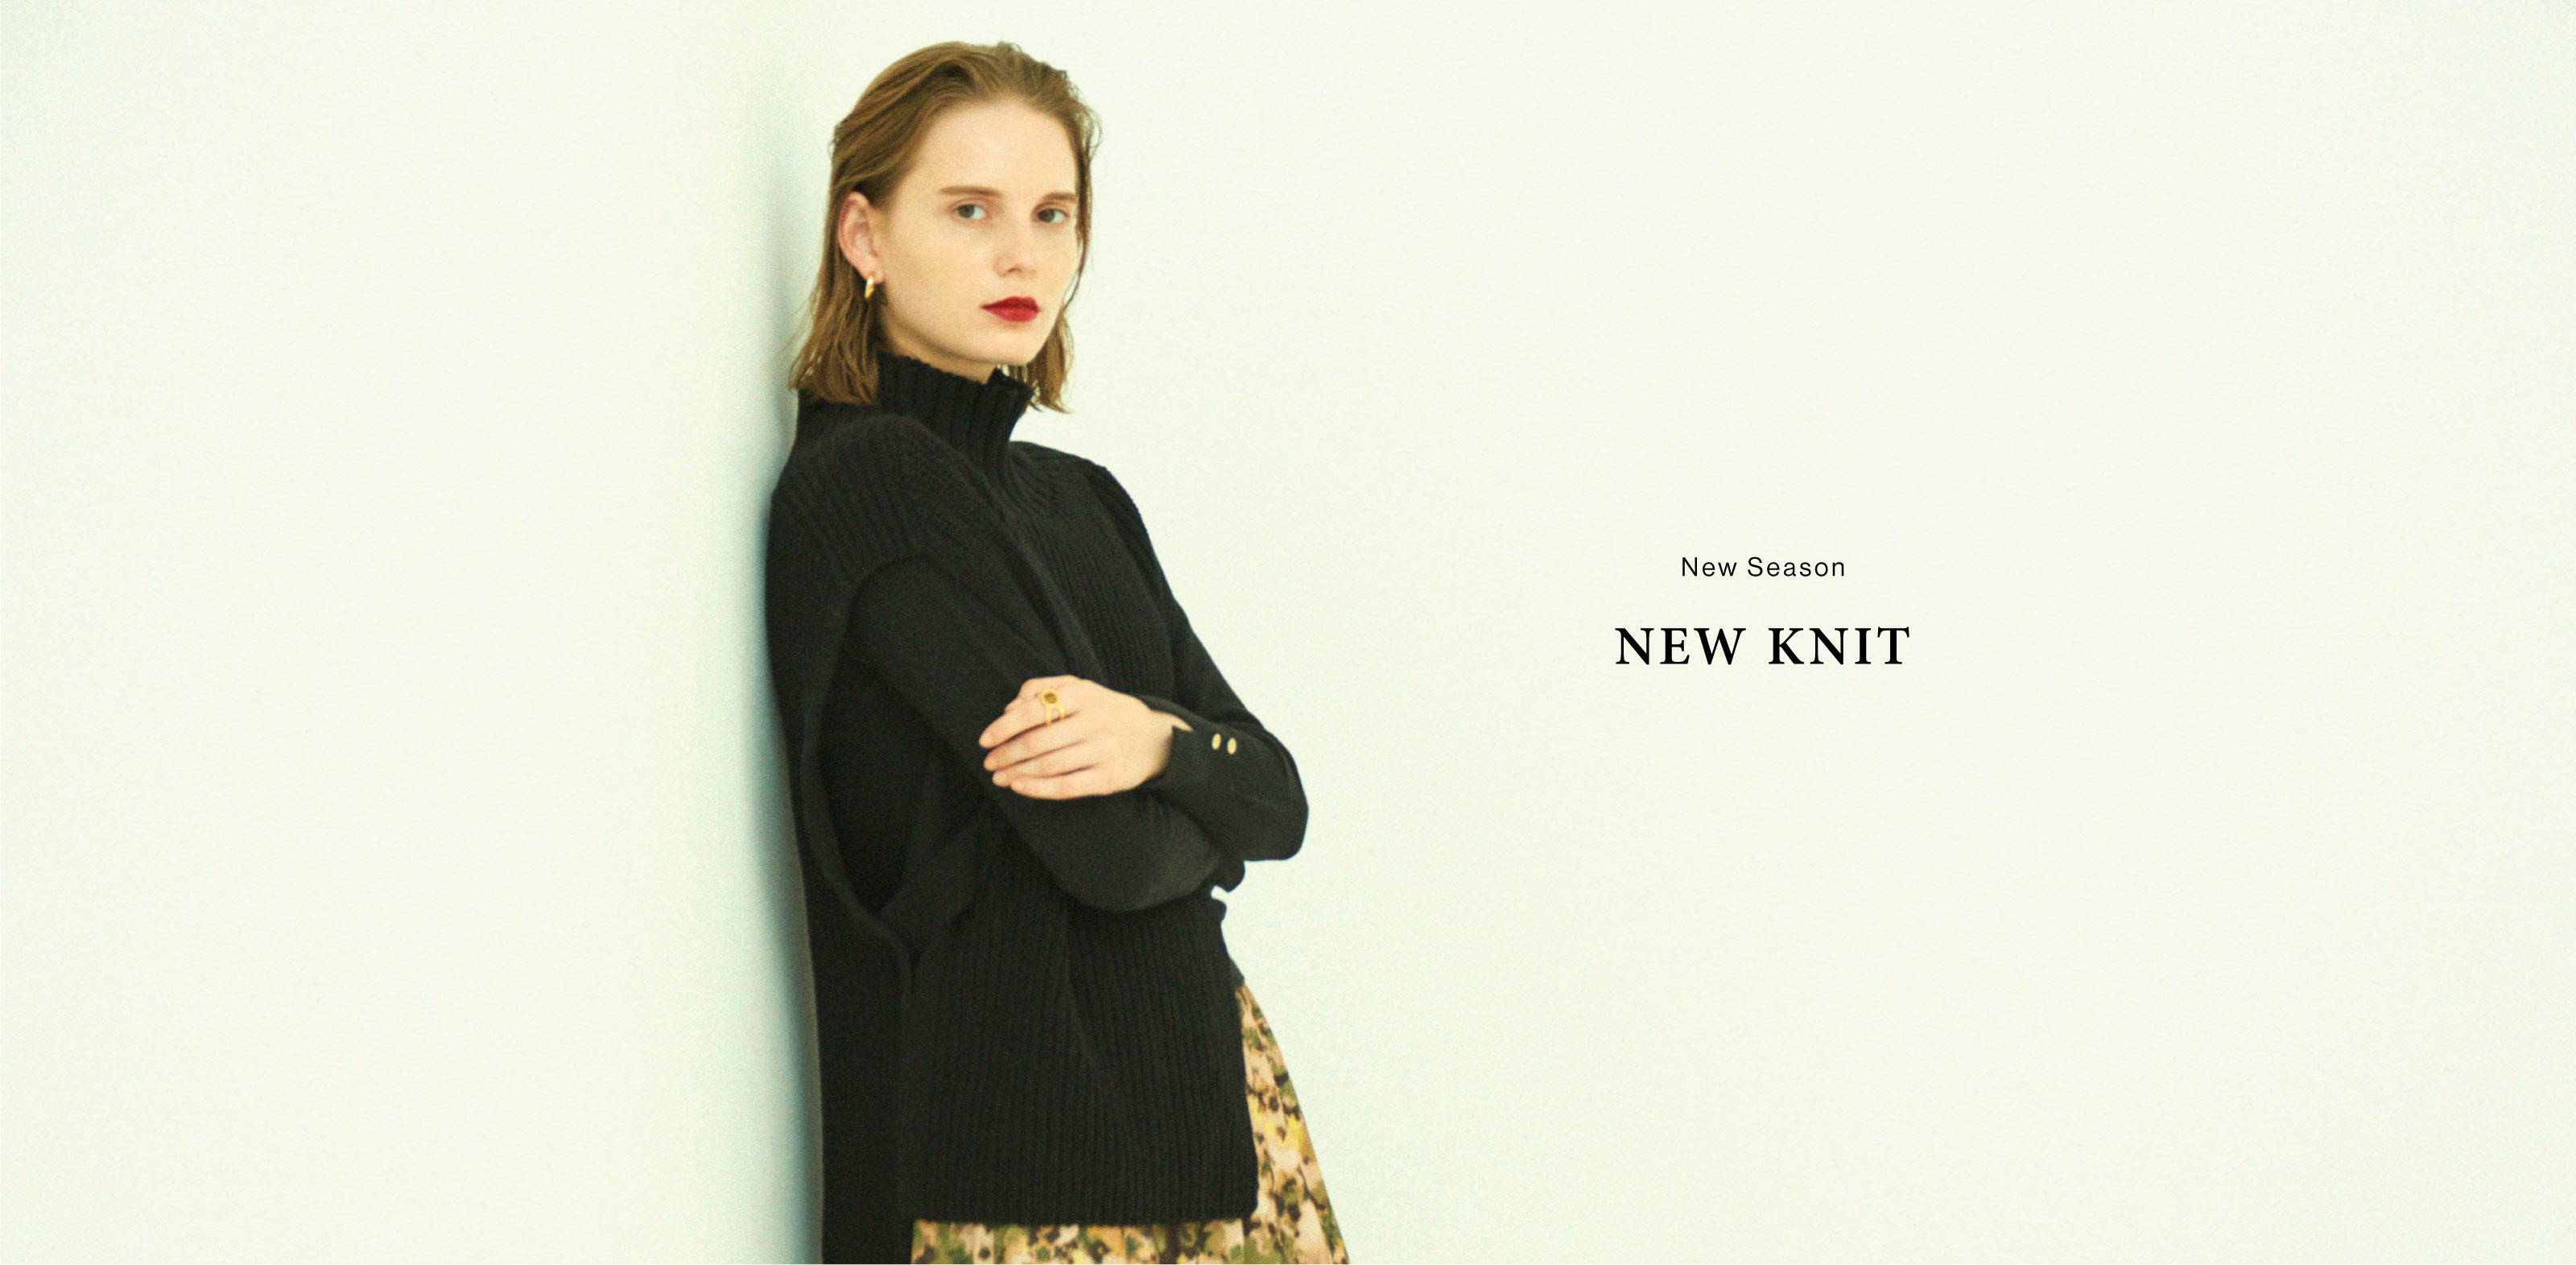 EMMEL REFINES -New Season NEW KNIT-